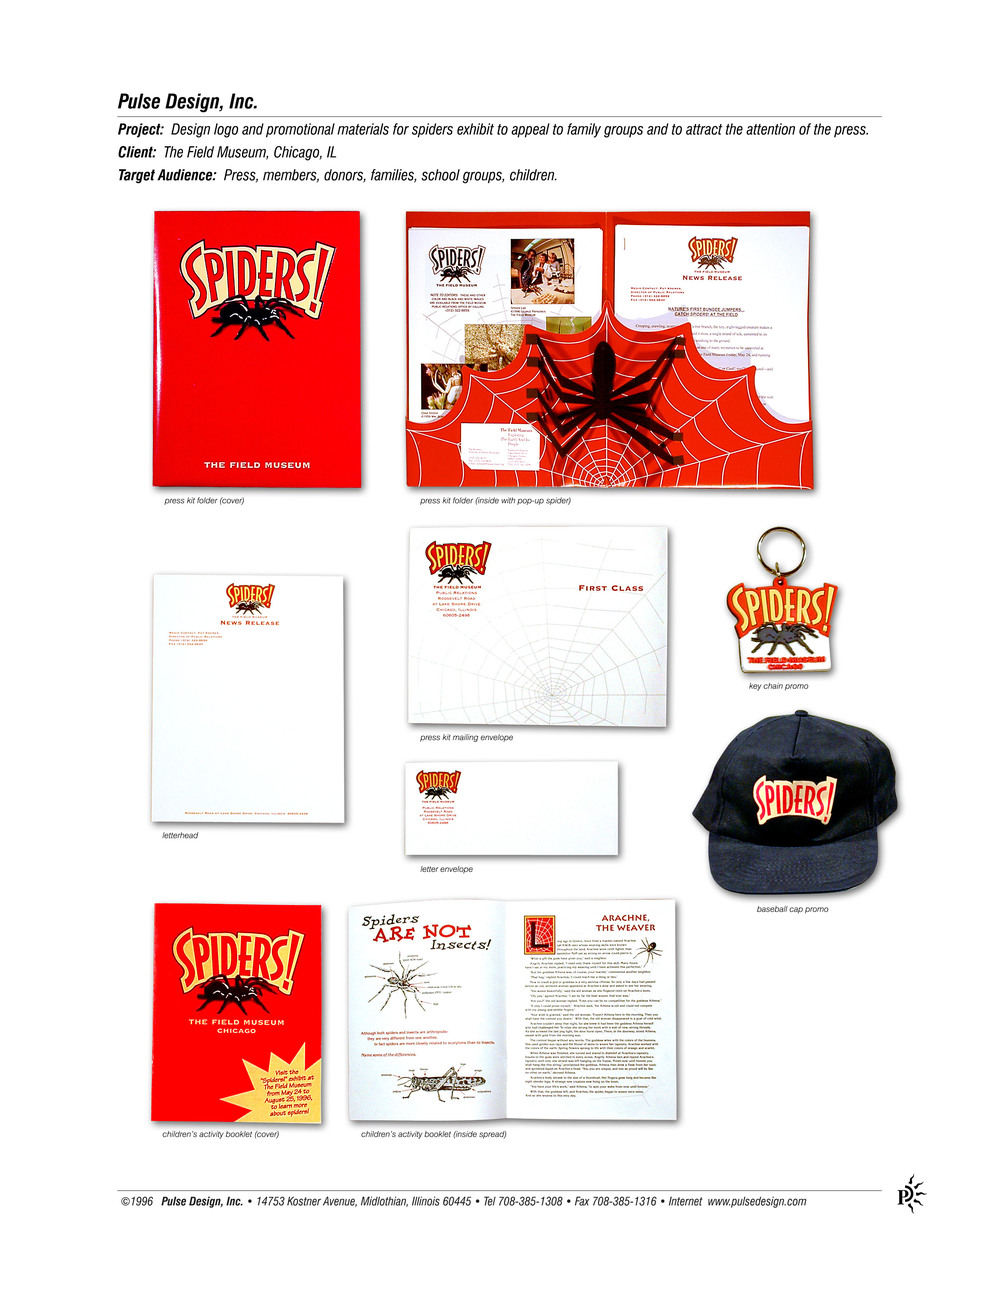 Spiders-Press-Kit-Pulse-Design-Inc.jpg